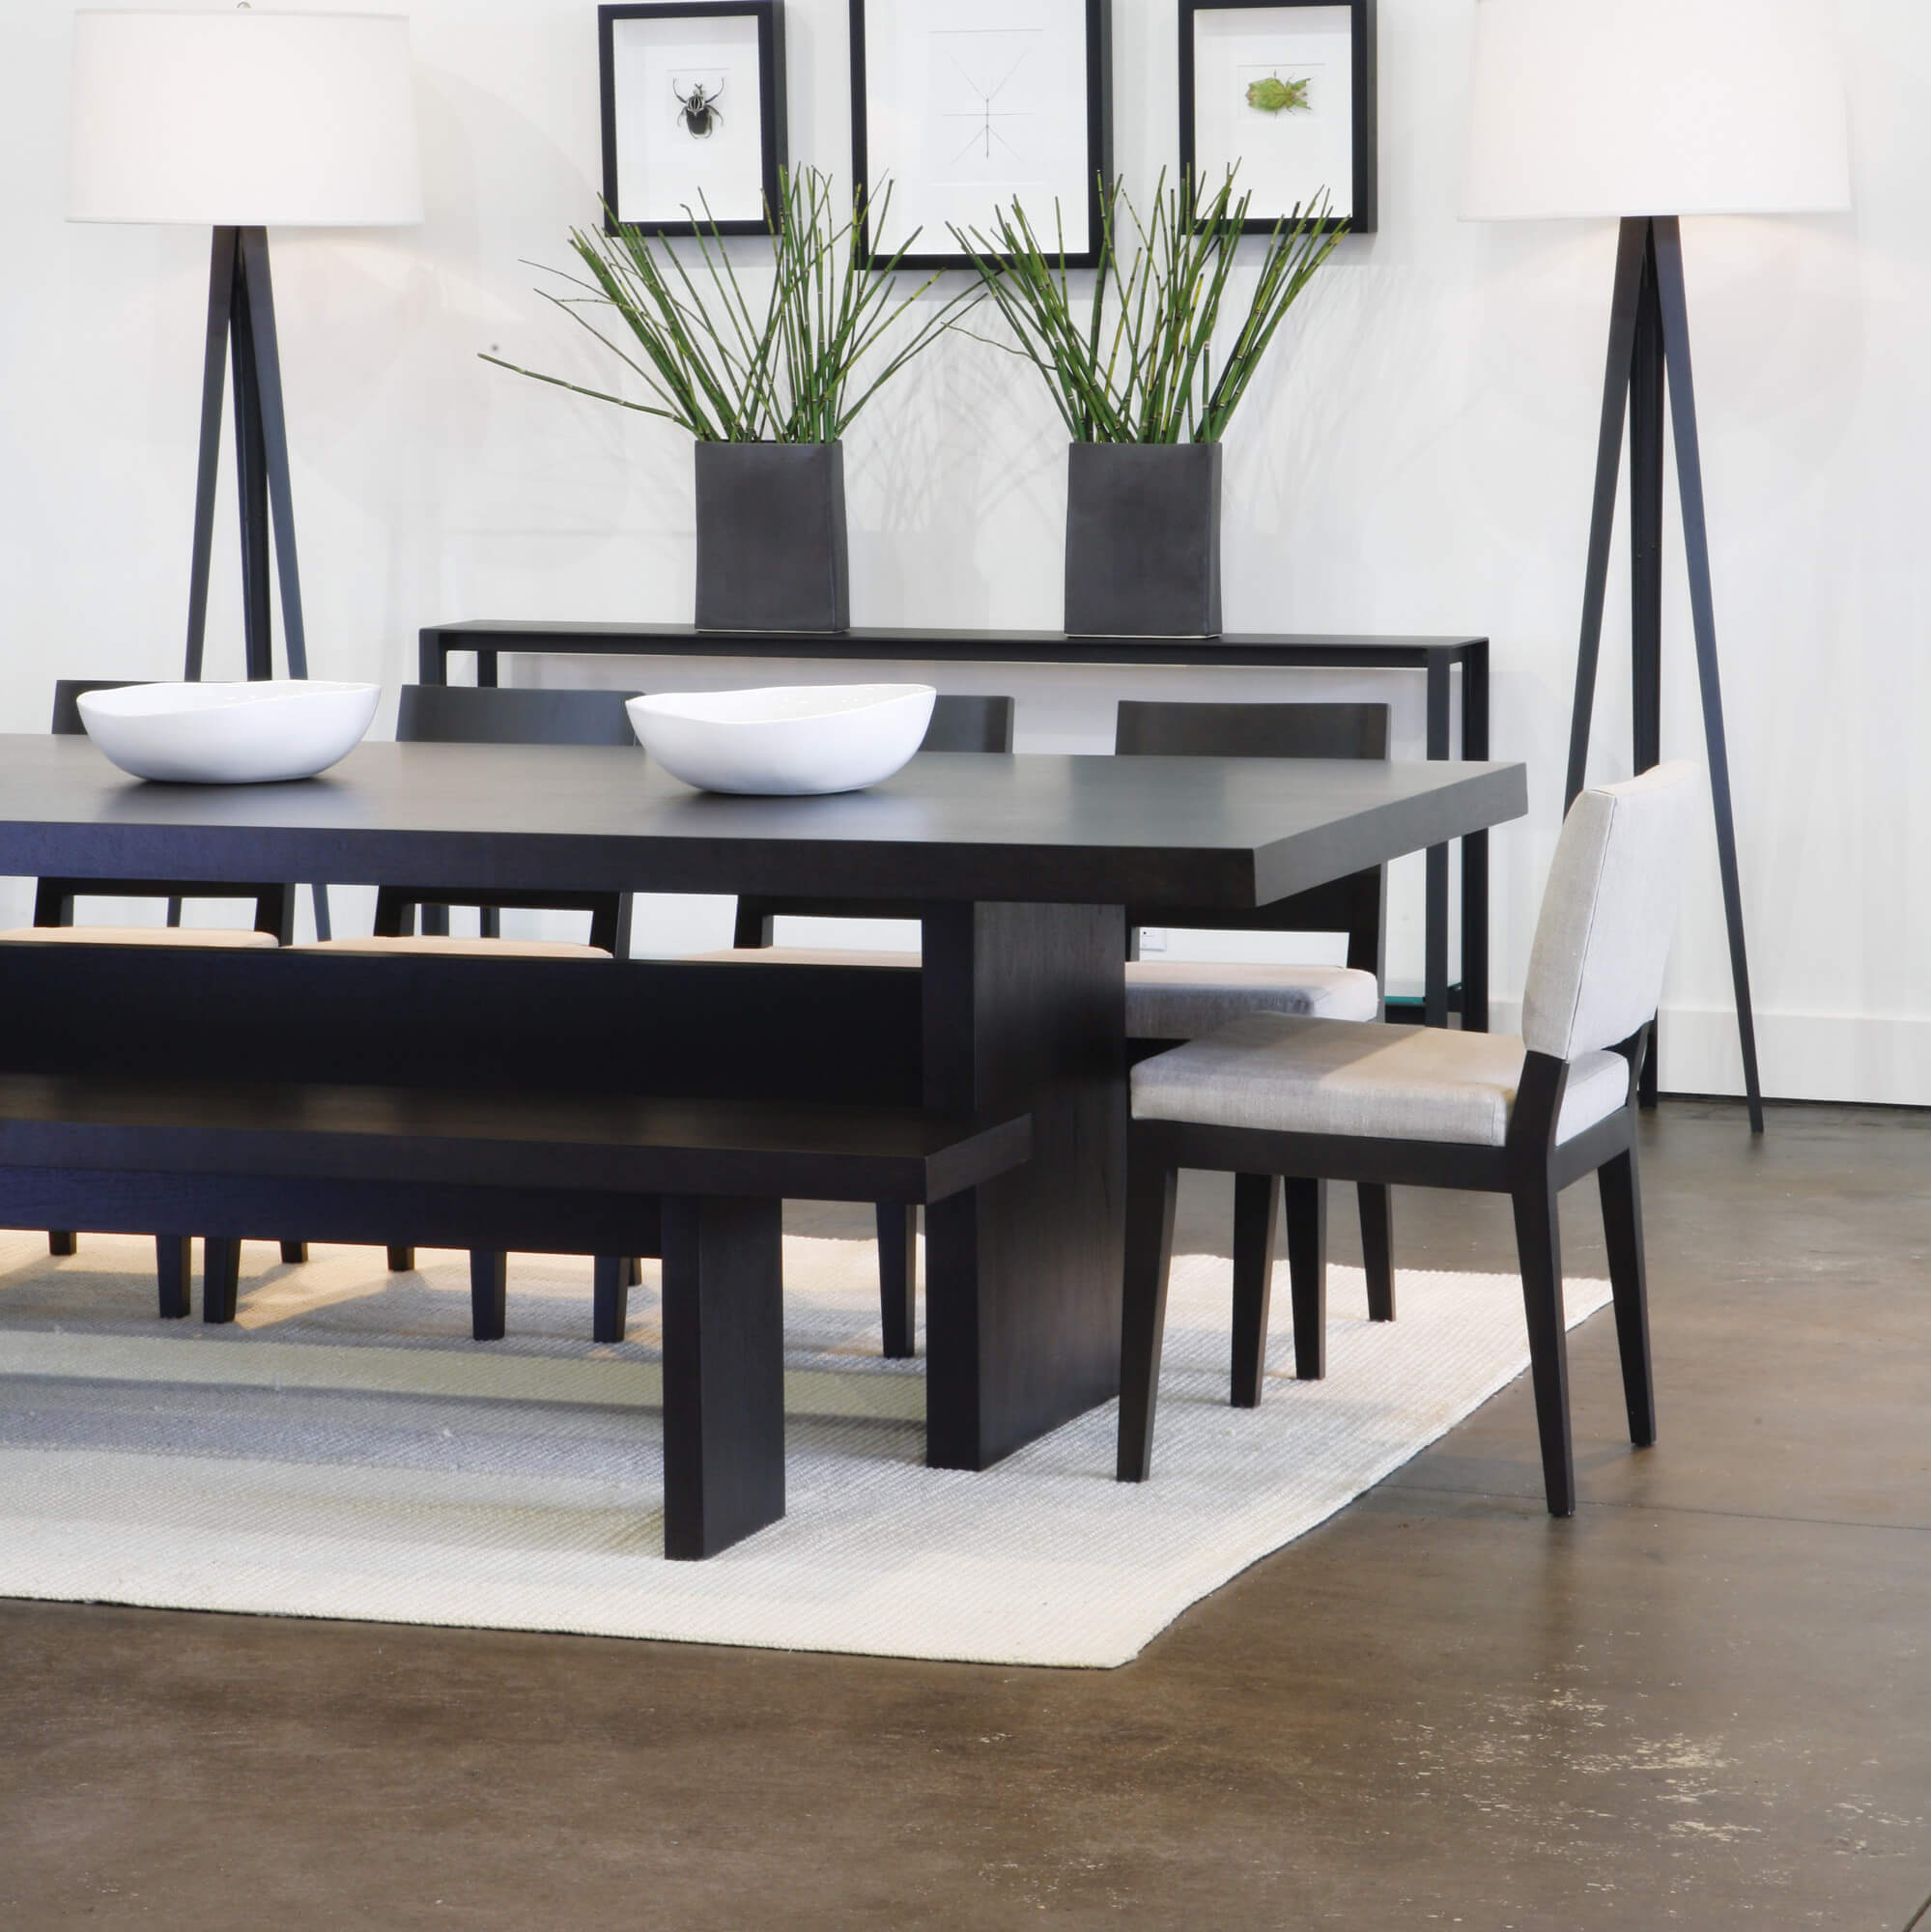 Black wood dining table set - 5 Piece Modern Dining Room Set With Bench This Is A Great Dining Room Furniture